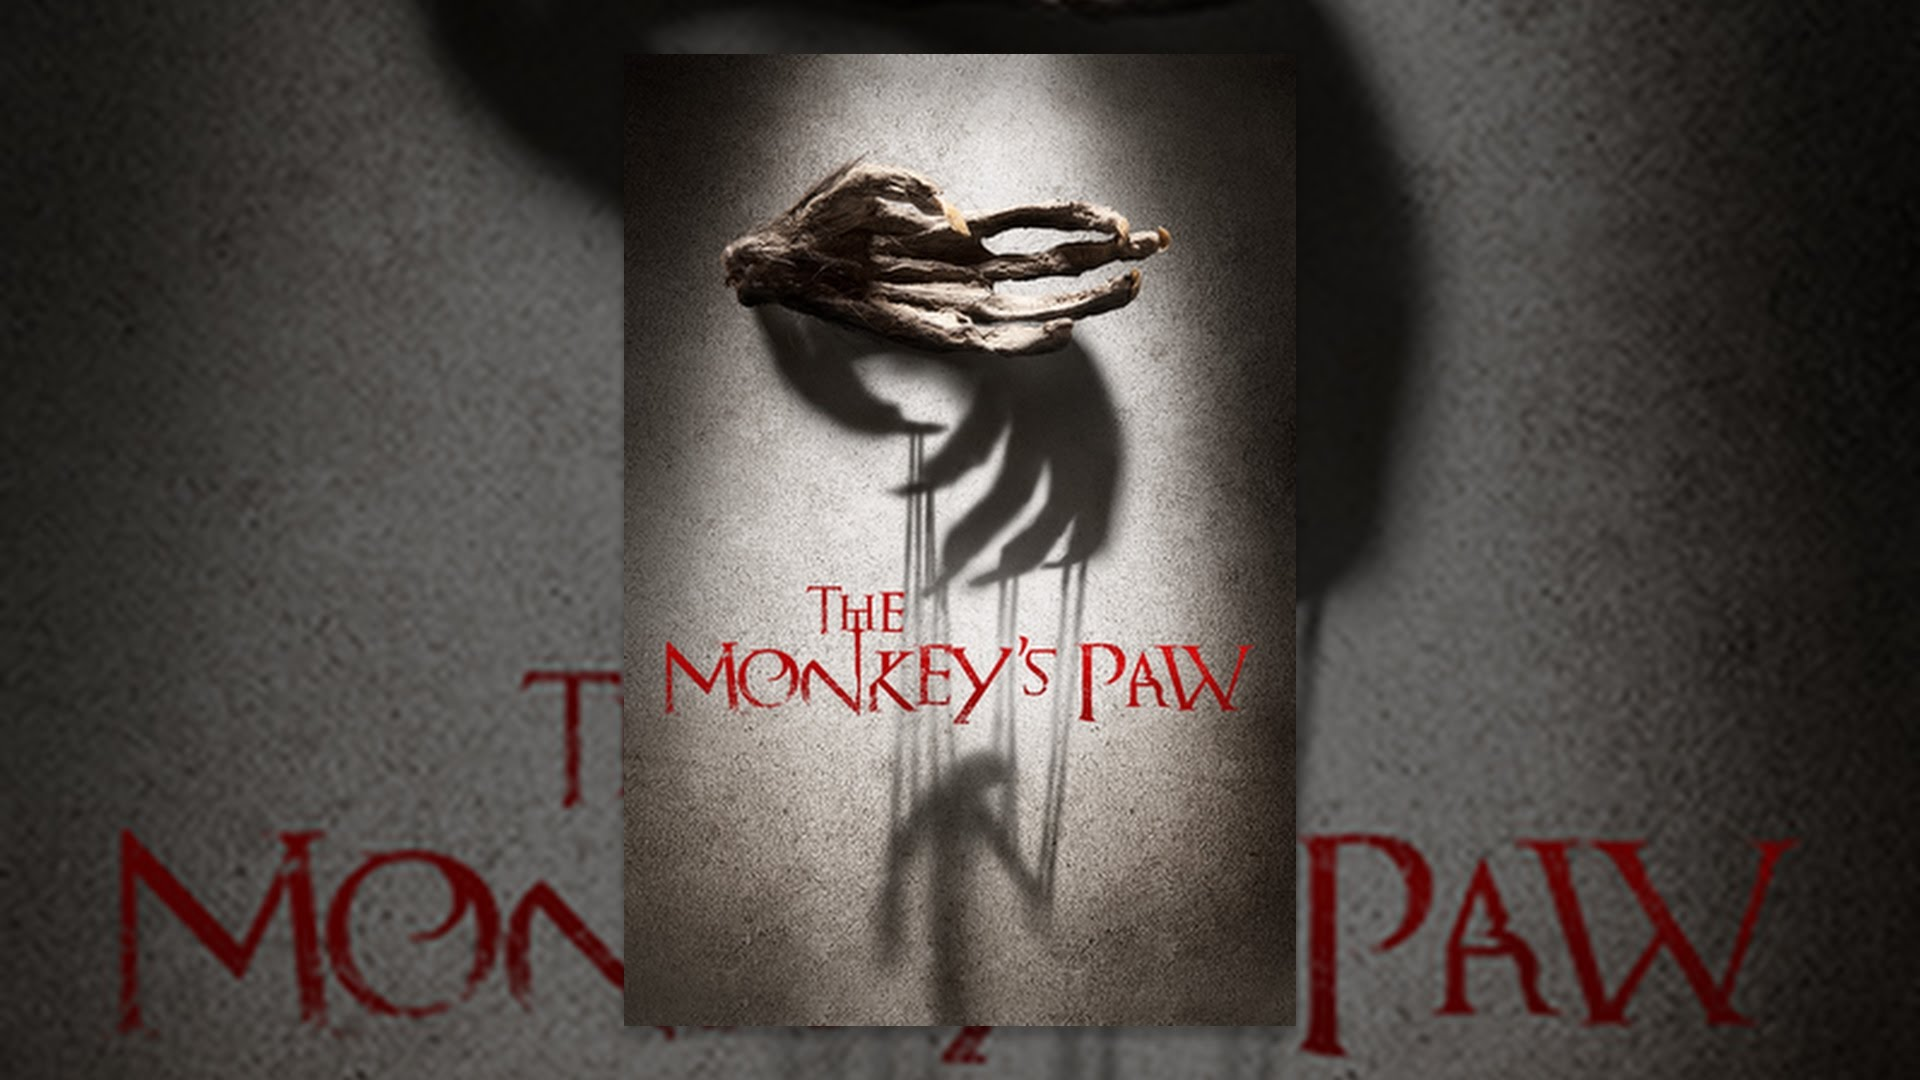 """the monkey s paw by w w The monkey's paw, w w jacobs written by missyshears february 8, 2018 this horror short story from w w jacobs is a classic """"three wishes"""" story that doubles as a horror story and a cautionary tale reminding us that unintended consequences often accompany the best intentions."""